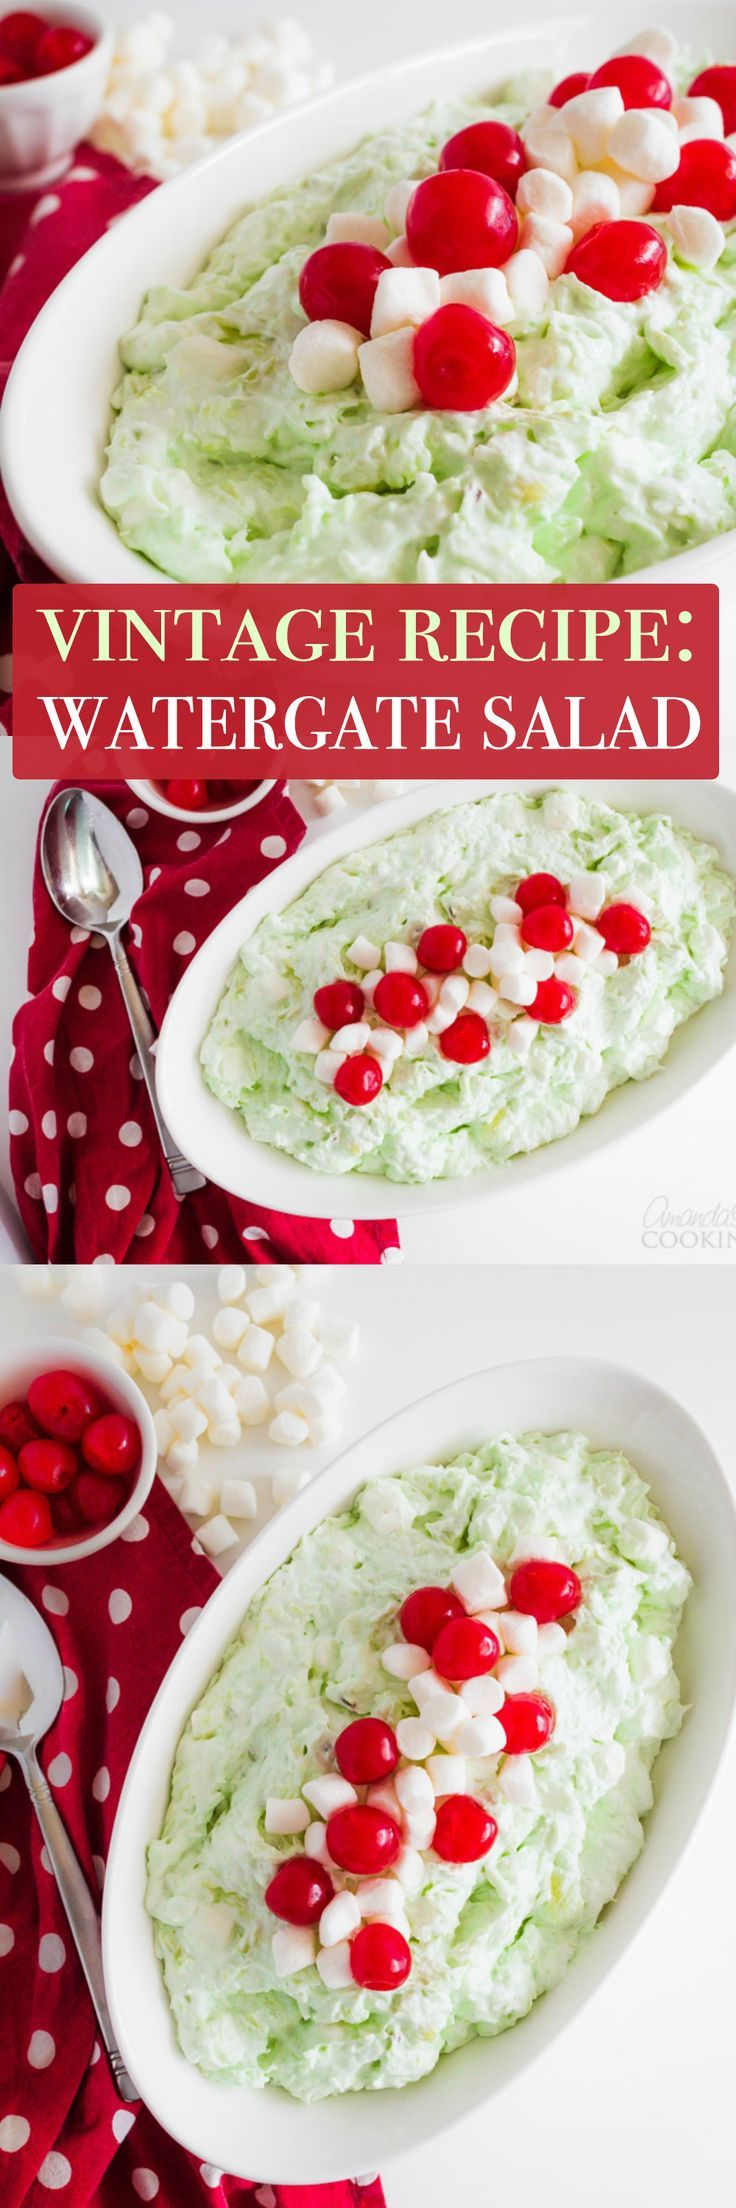 Watergate salad was something I ate at family gatherings when I was a child. It's that fluffy green pistachio flavored dessert brimming with marshmallows!